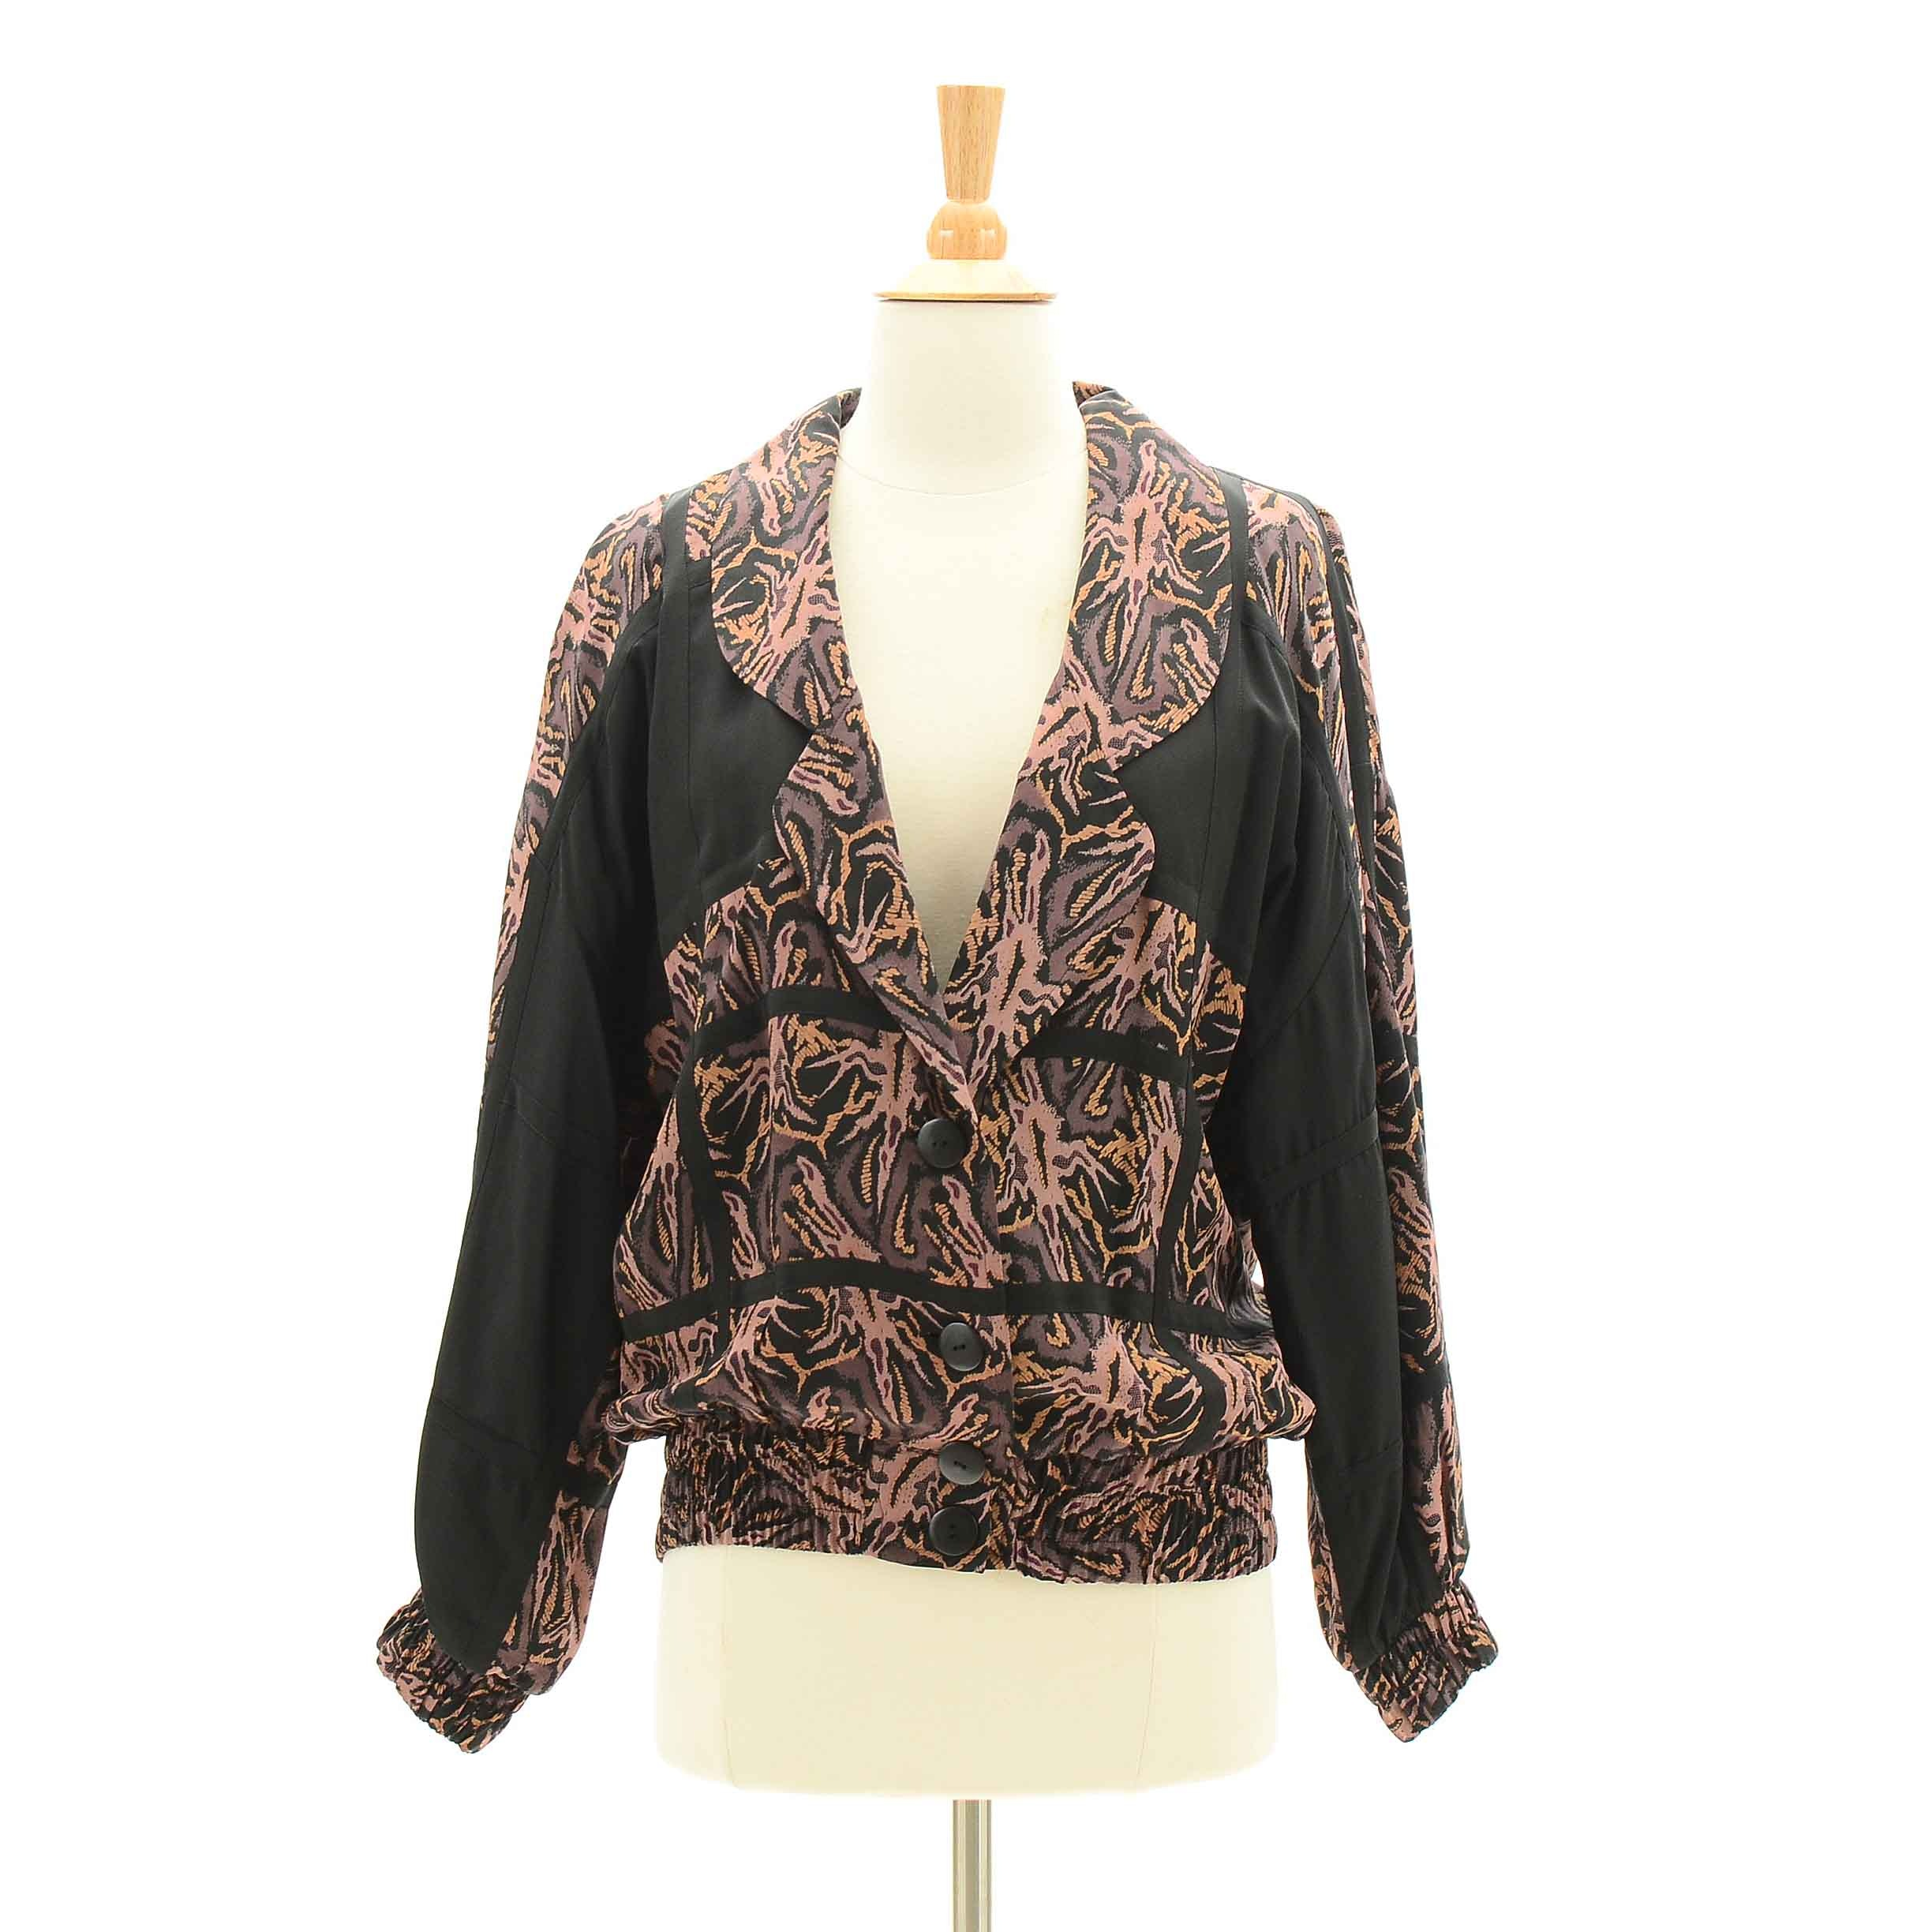 Women's 1980s Vintage Silk Jacket